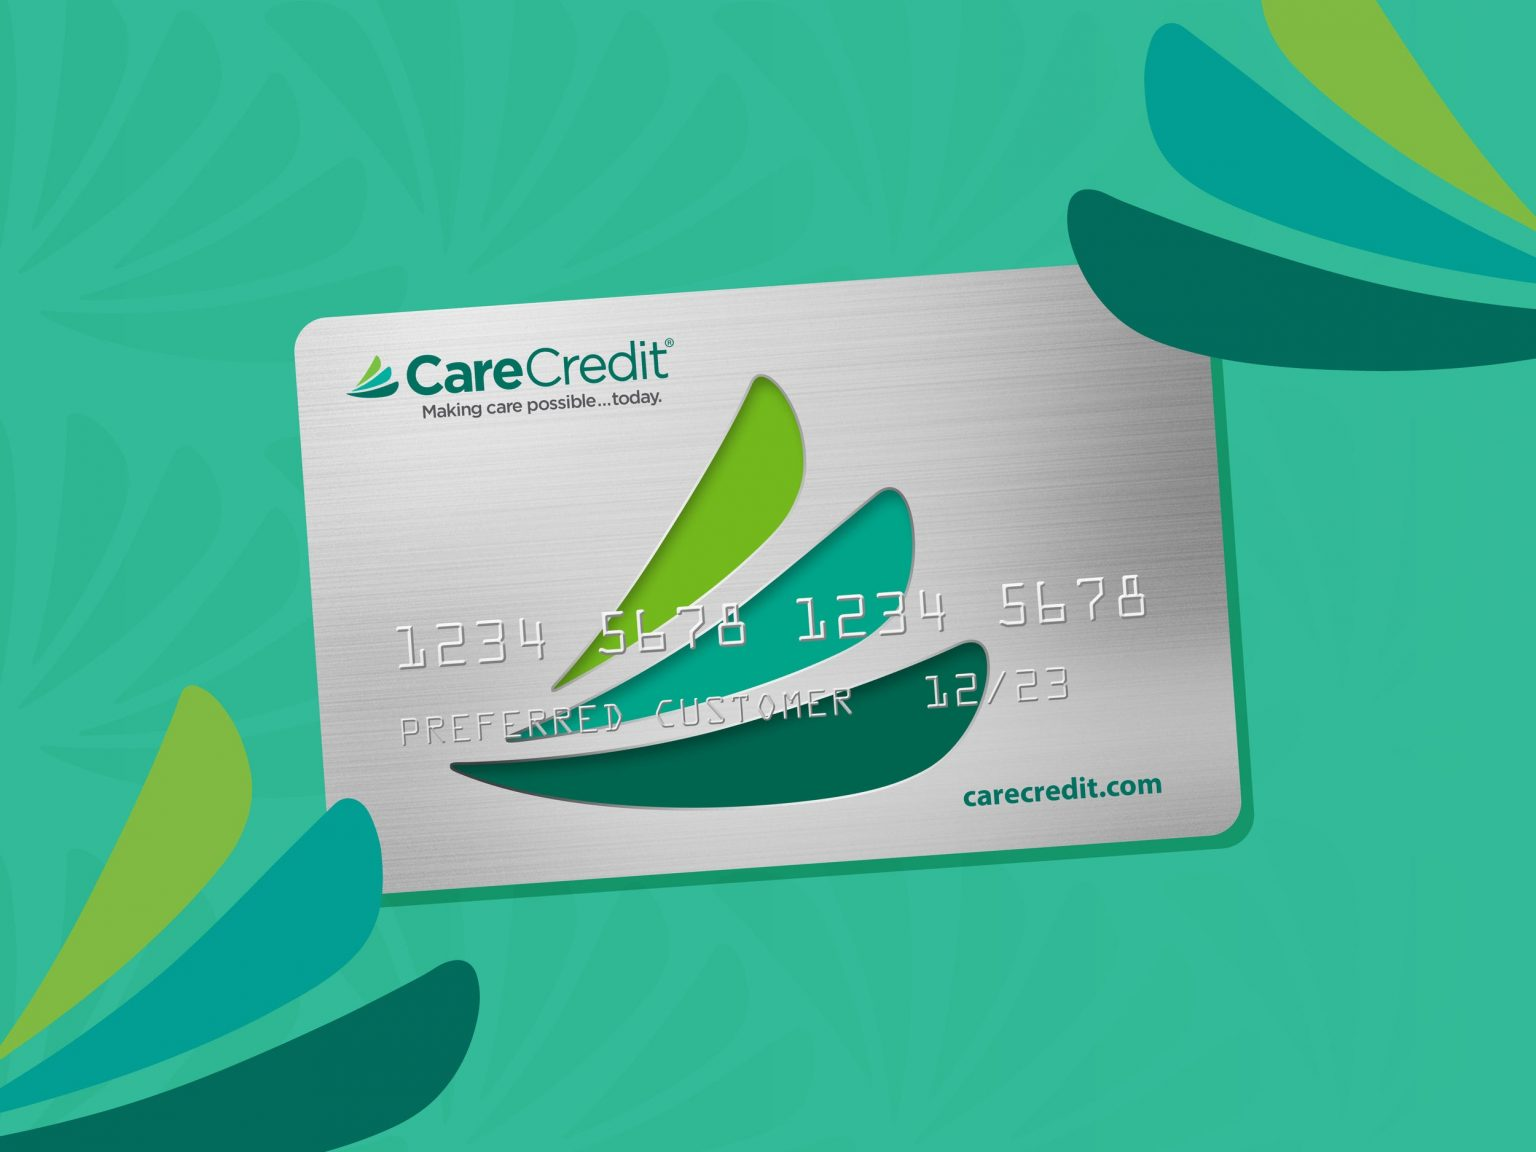 Care Credit Financing is now available at K2 Restorative Medicine and Med-Spa